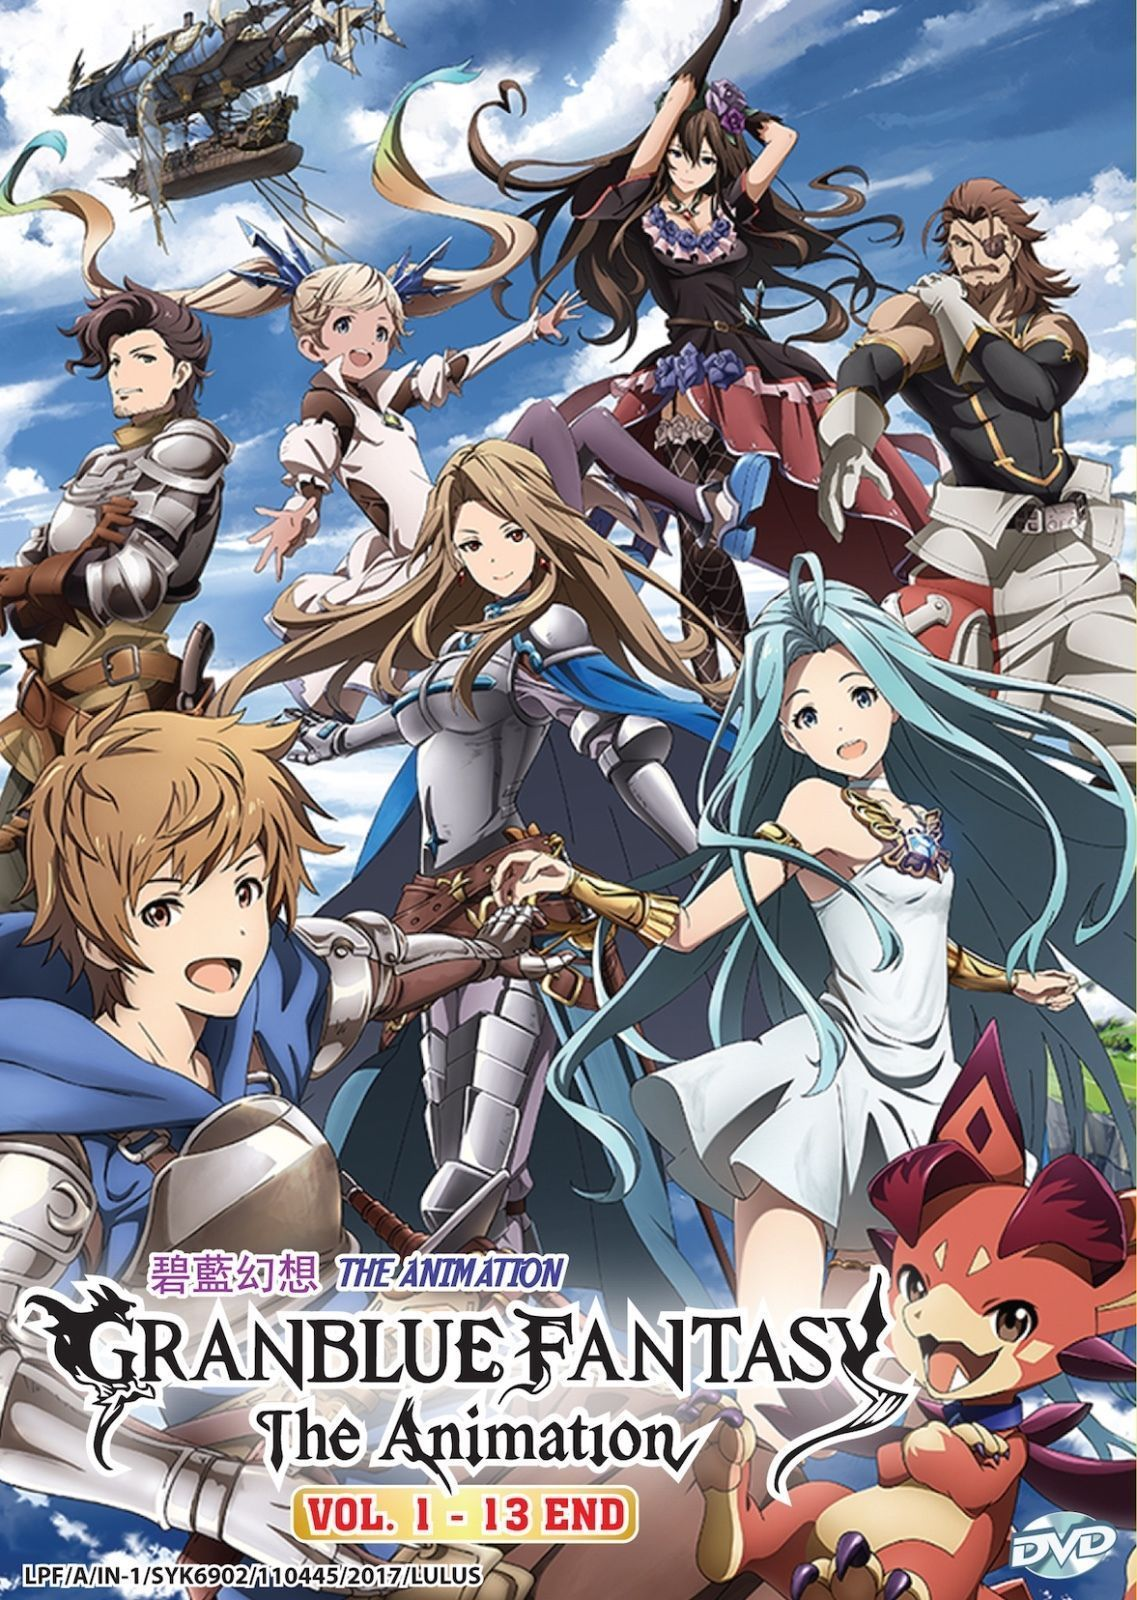 Dvd Anime Granblue Fantasy The Animation Vol 1 13 End Free Shipping Anime Anime Characters Upcoming Anime